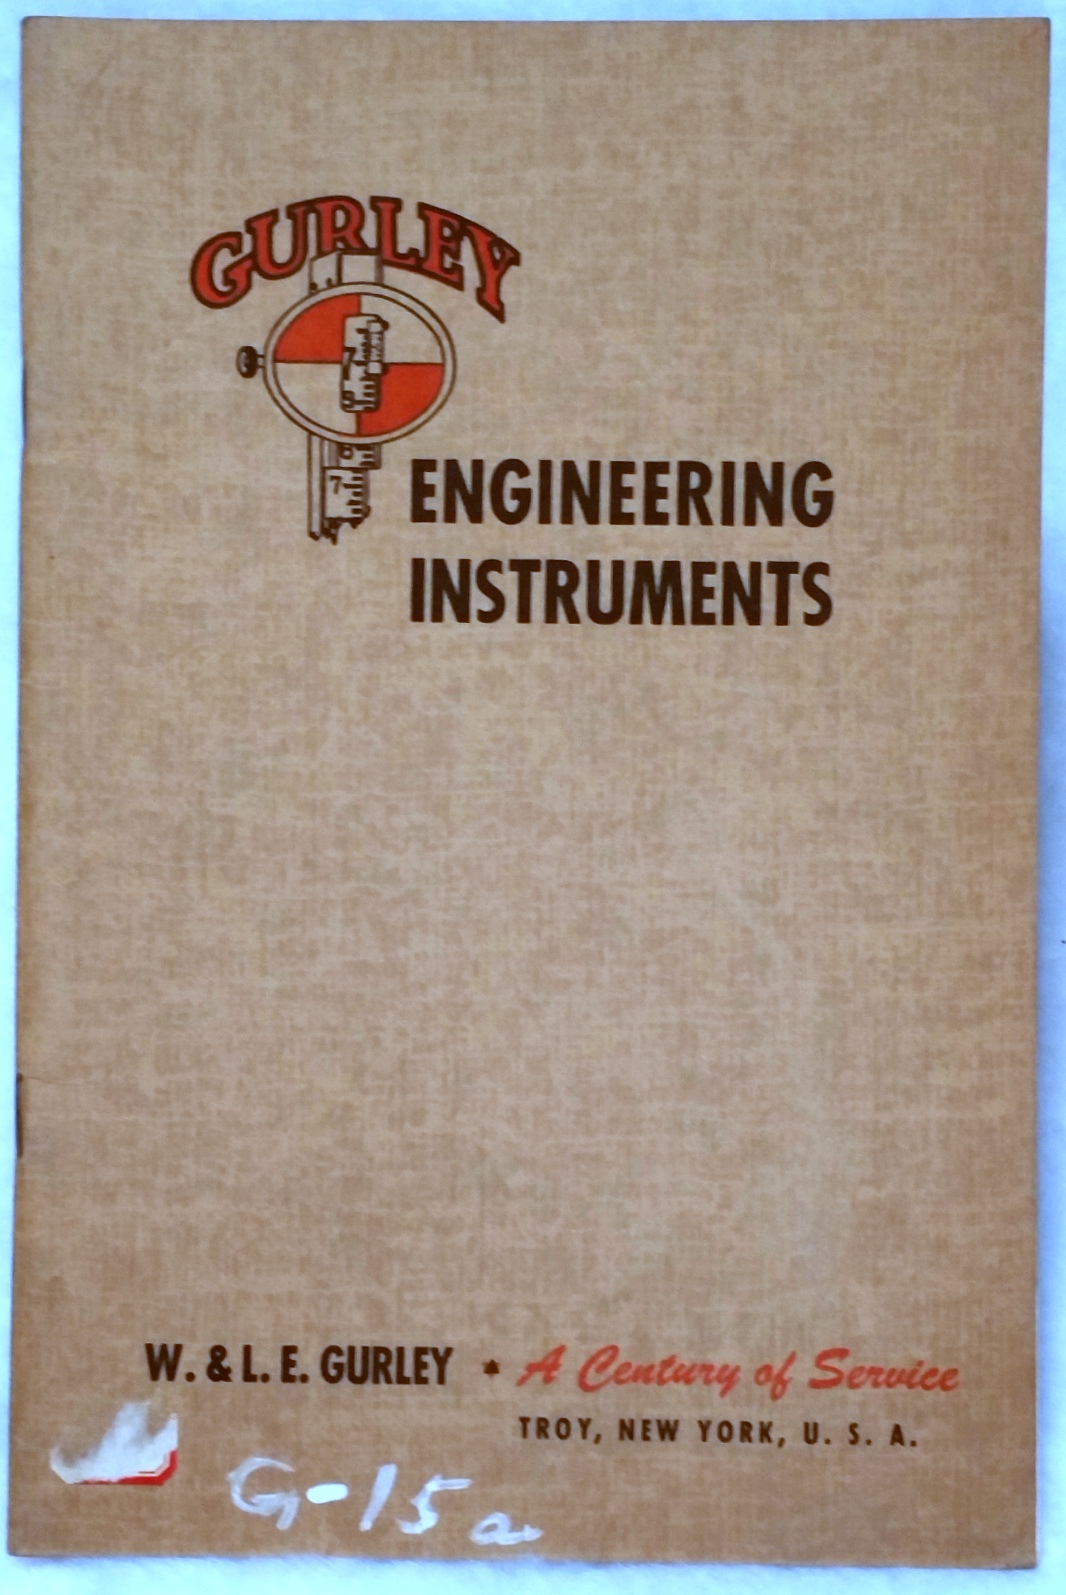 Image for Gurley Engineering Instruments, Bulletin No. 50